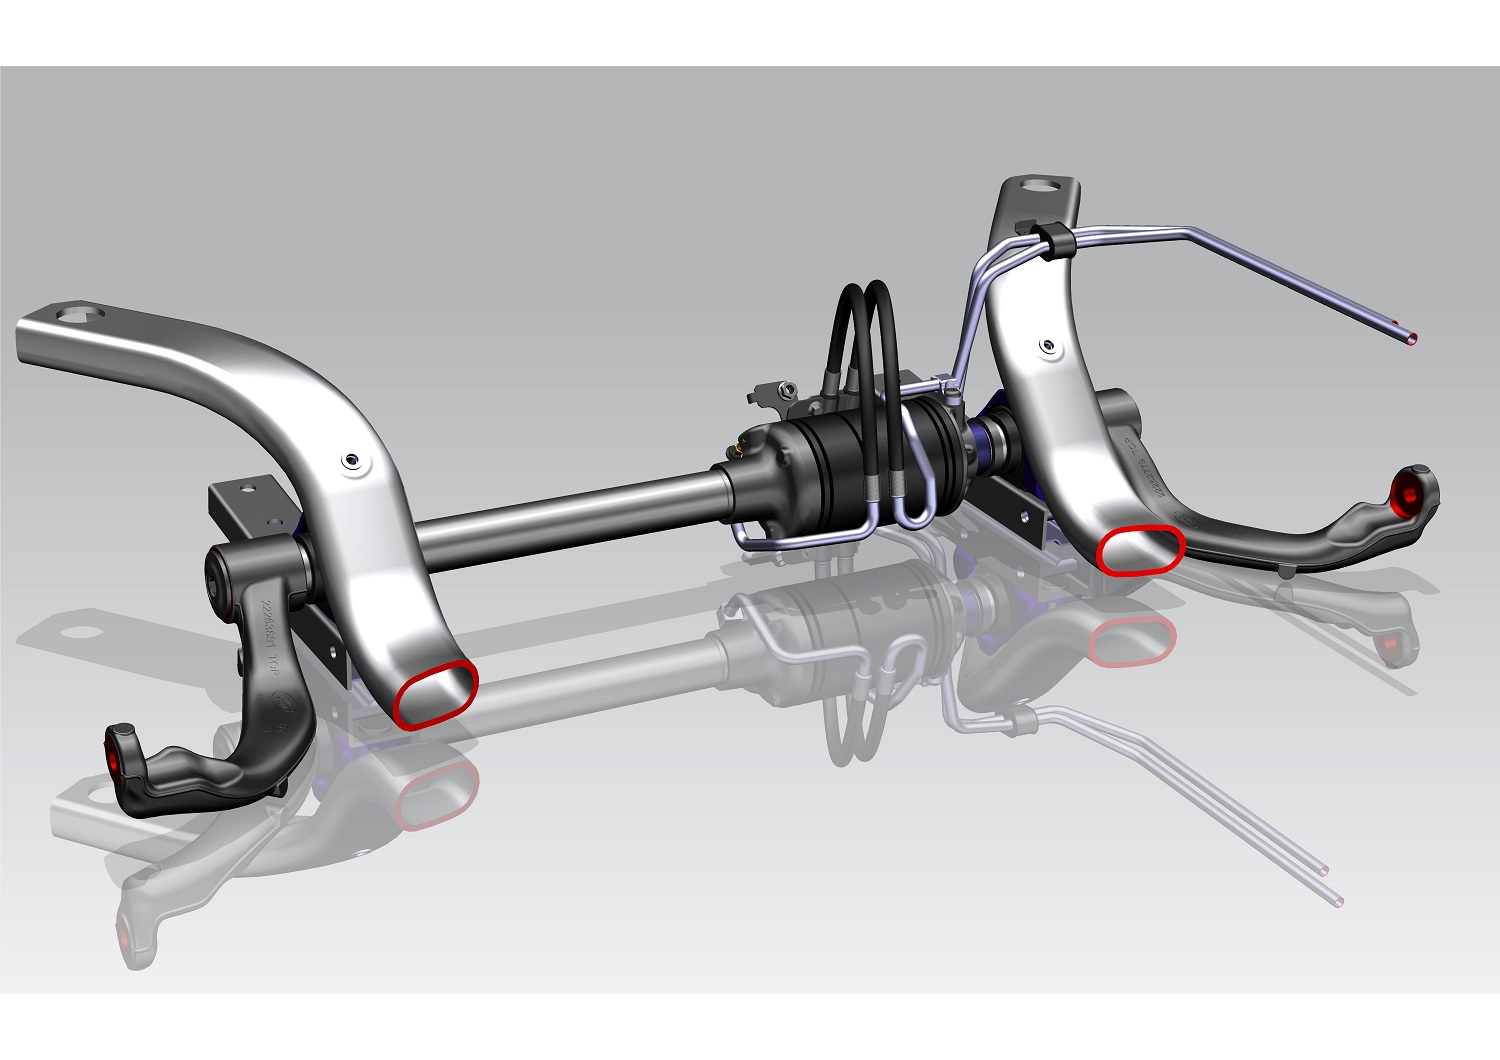 Range Rover Sport suspension design using BWI airspring and